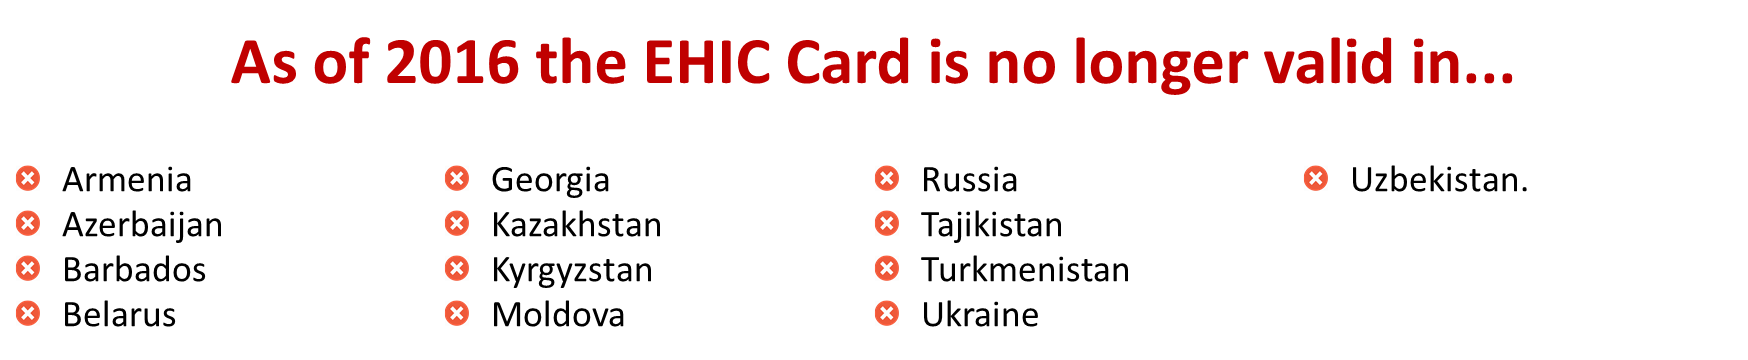 EHIC europe european health insurance card protect protection cover